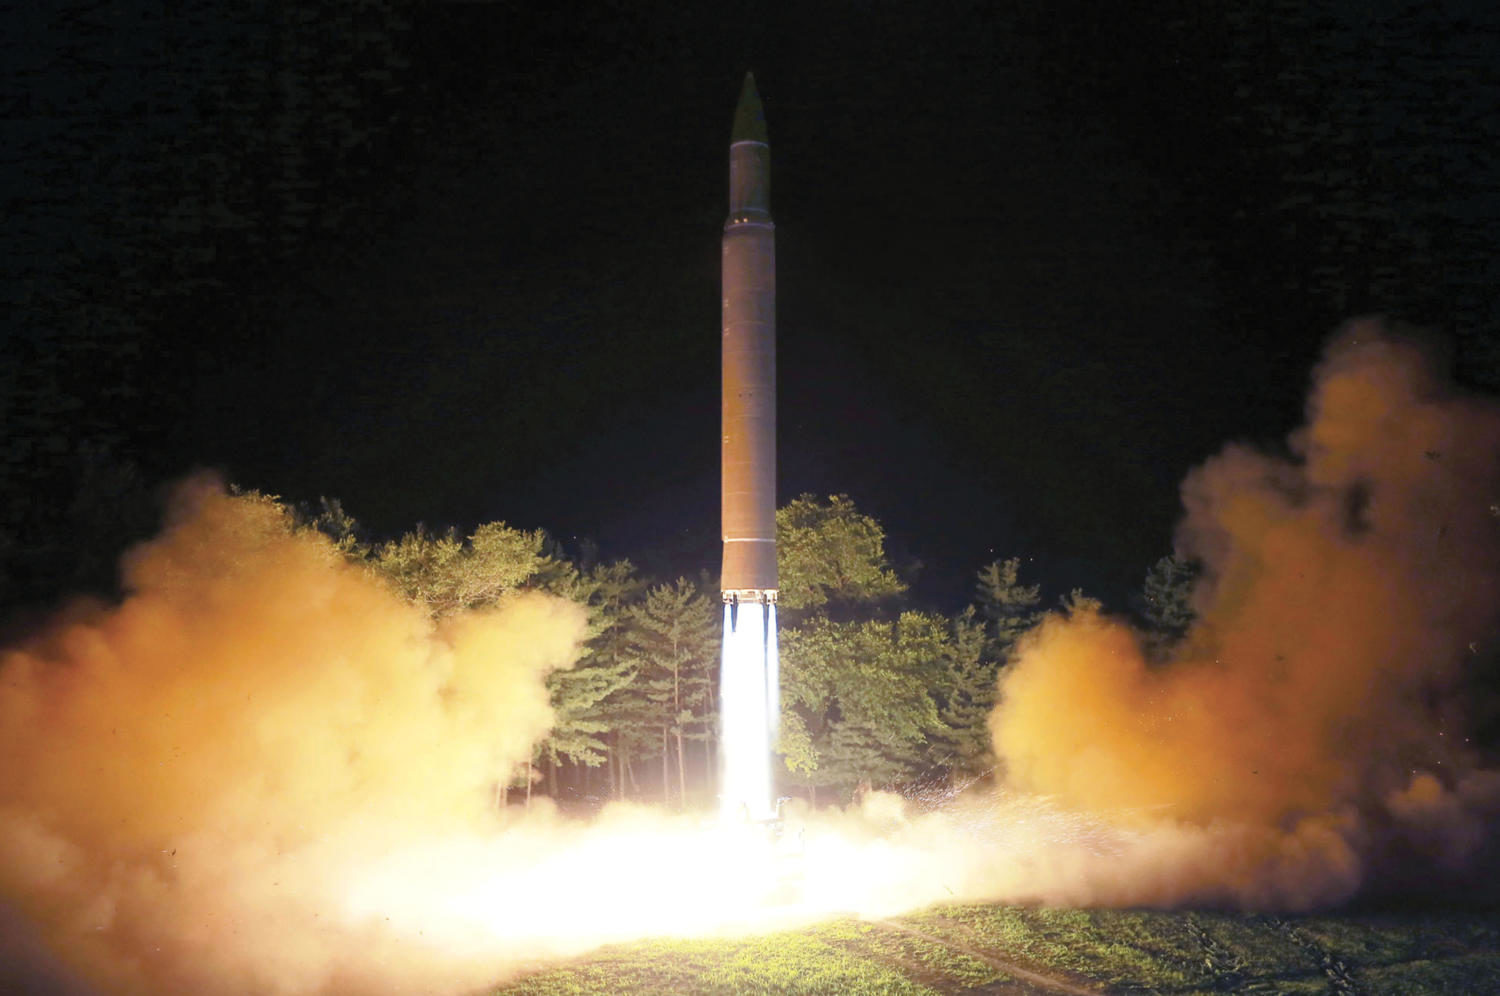 FILE+-+This+July+28%2C+2017%2C+file+photo+distributed+by+the+North+Korean+government+shows+what+was+said+to+be+the+launch+of+a+Hwasong-14+intercontinental+ballistic+missile+at+an+undisclosed+location+in+North+Korea.+America%E2%80%99s+annual+joint+military+exercises+with+South+Korea+always+frustrate+North+Korea.+Some+experts+say+North+Korea+is+mainly+focused+on+the+bigger+picture+of+testing+its+bargaining+power+against+the+United+States+with+its+new+long-range+missiles+and+likely+has+no+interest+in+letting+things+get+too+tense+during+the+drills.+%28Korean+Central+News+Agency%2FKorea+News+Service+via+AP%2C+File%29